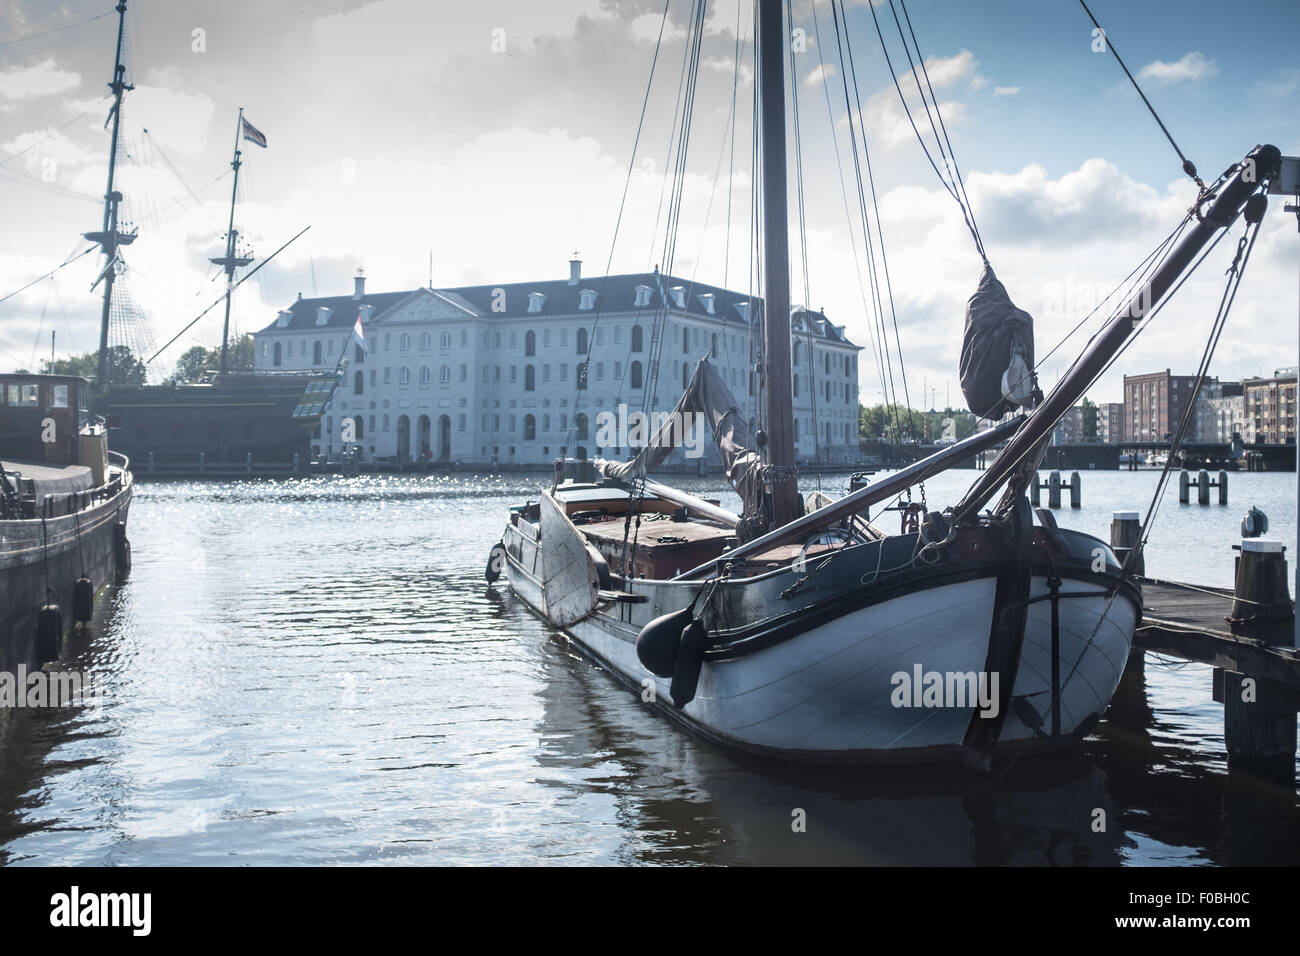 Historic tall ships on the Amstel River in Amsterdam next to the Nemo centre - Stock Image